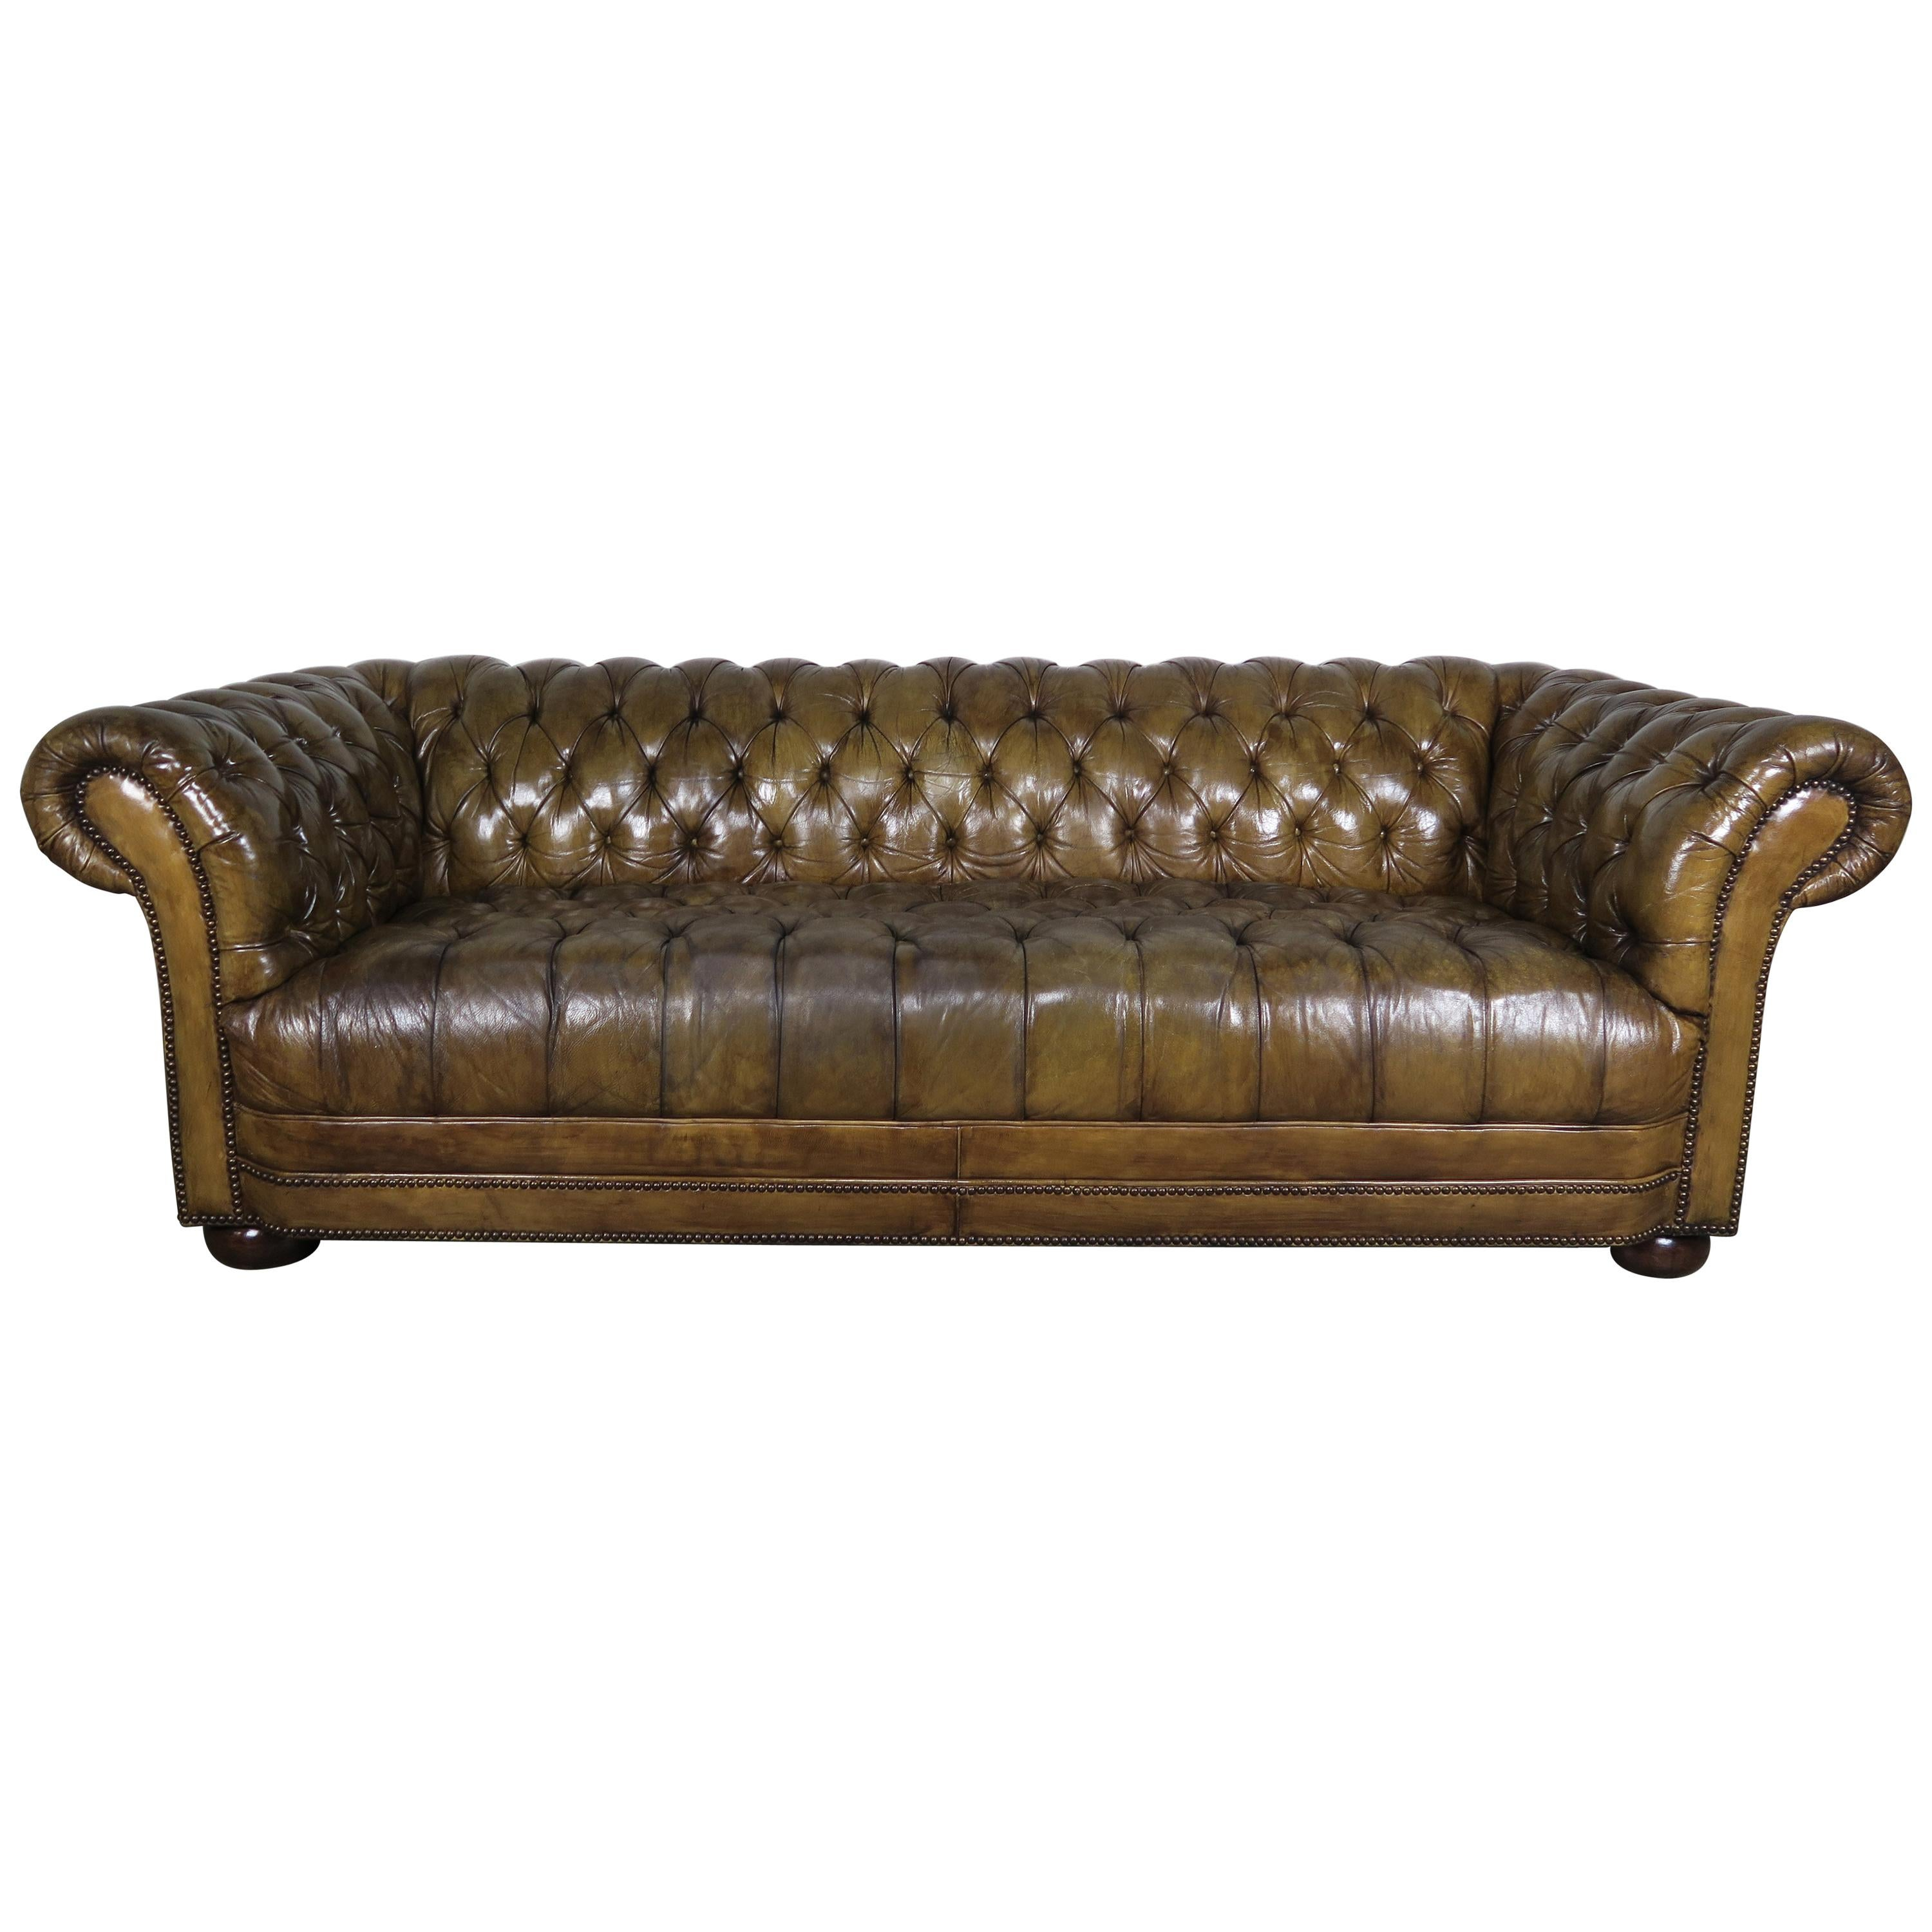 Brown Leather On Tufted Chesterfield Sofa Clic